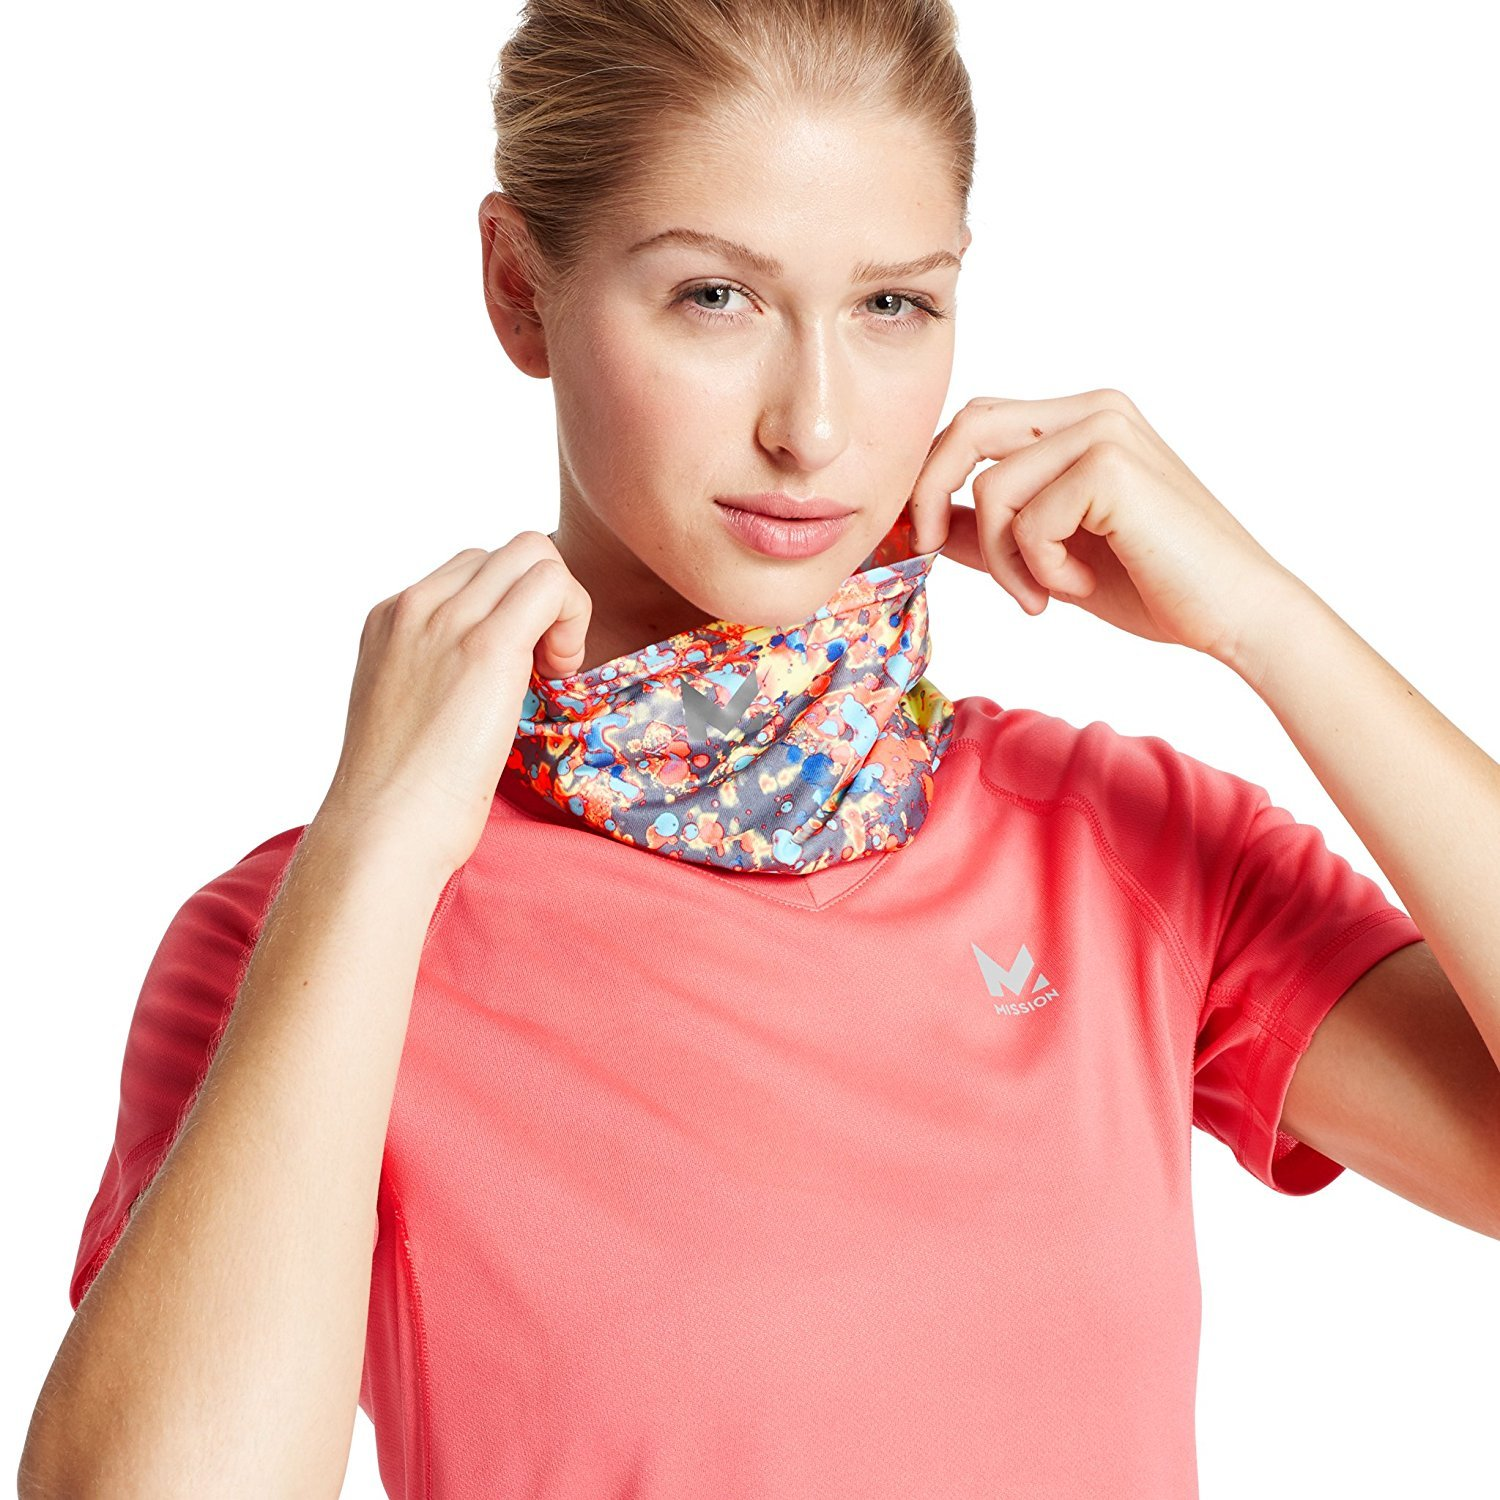 Mission HydroActive Fitness Graffitti Pattern High Vis Coral One Size Mission Athlete Care 109030-P